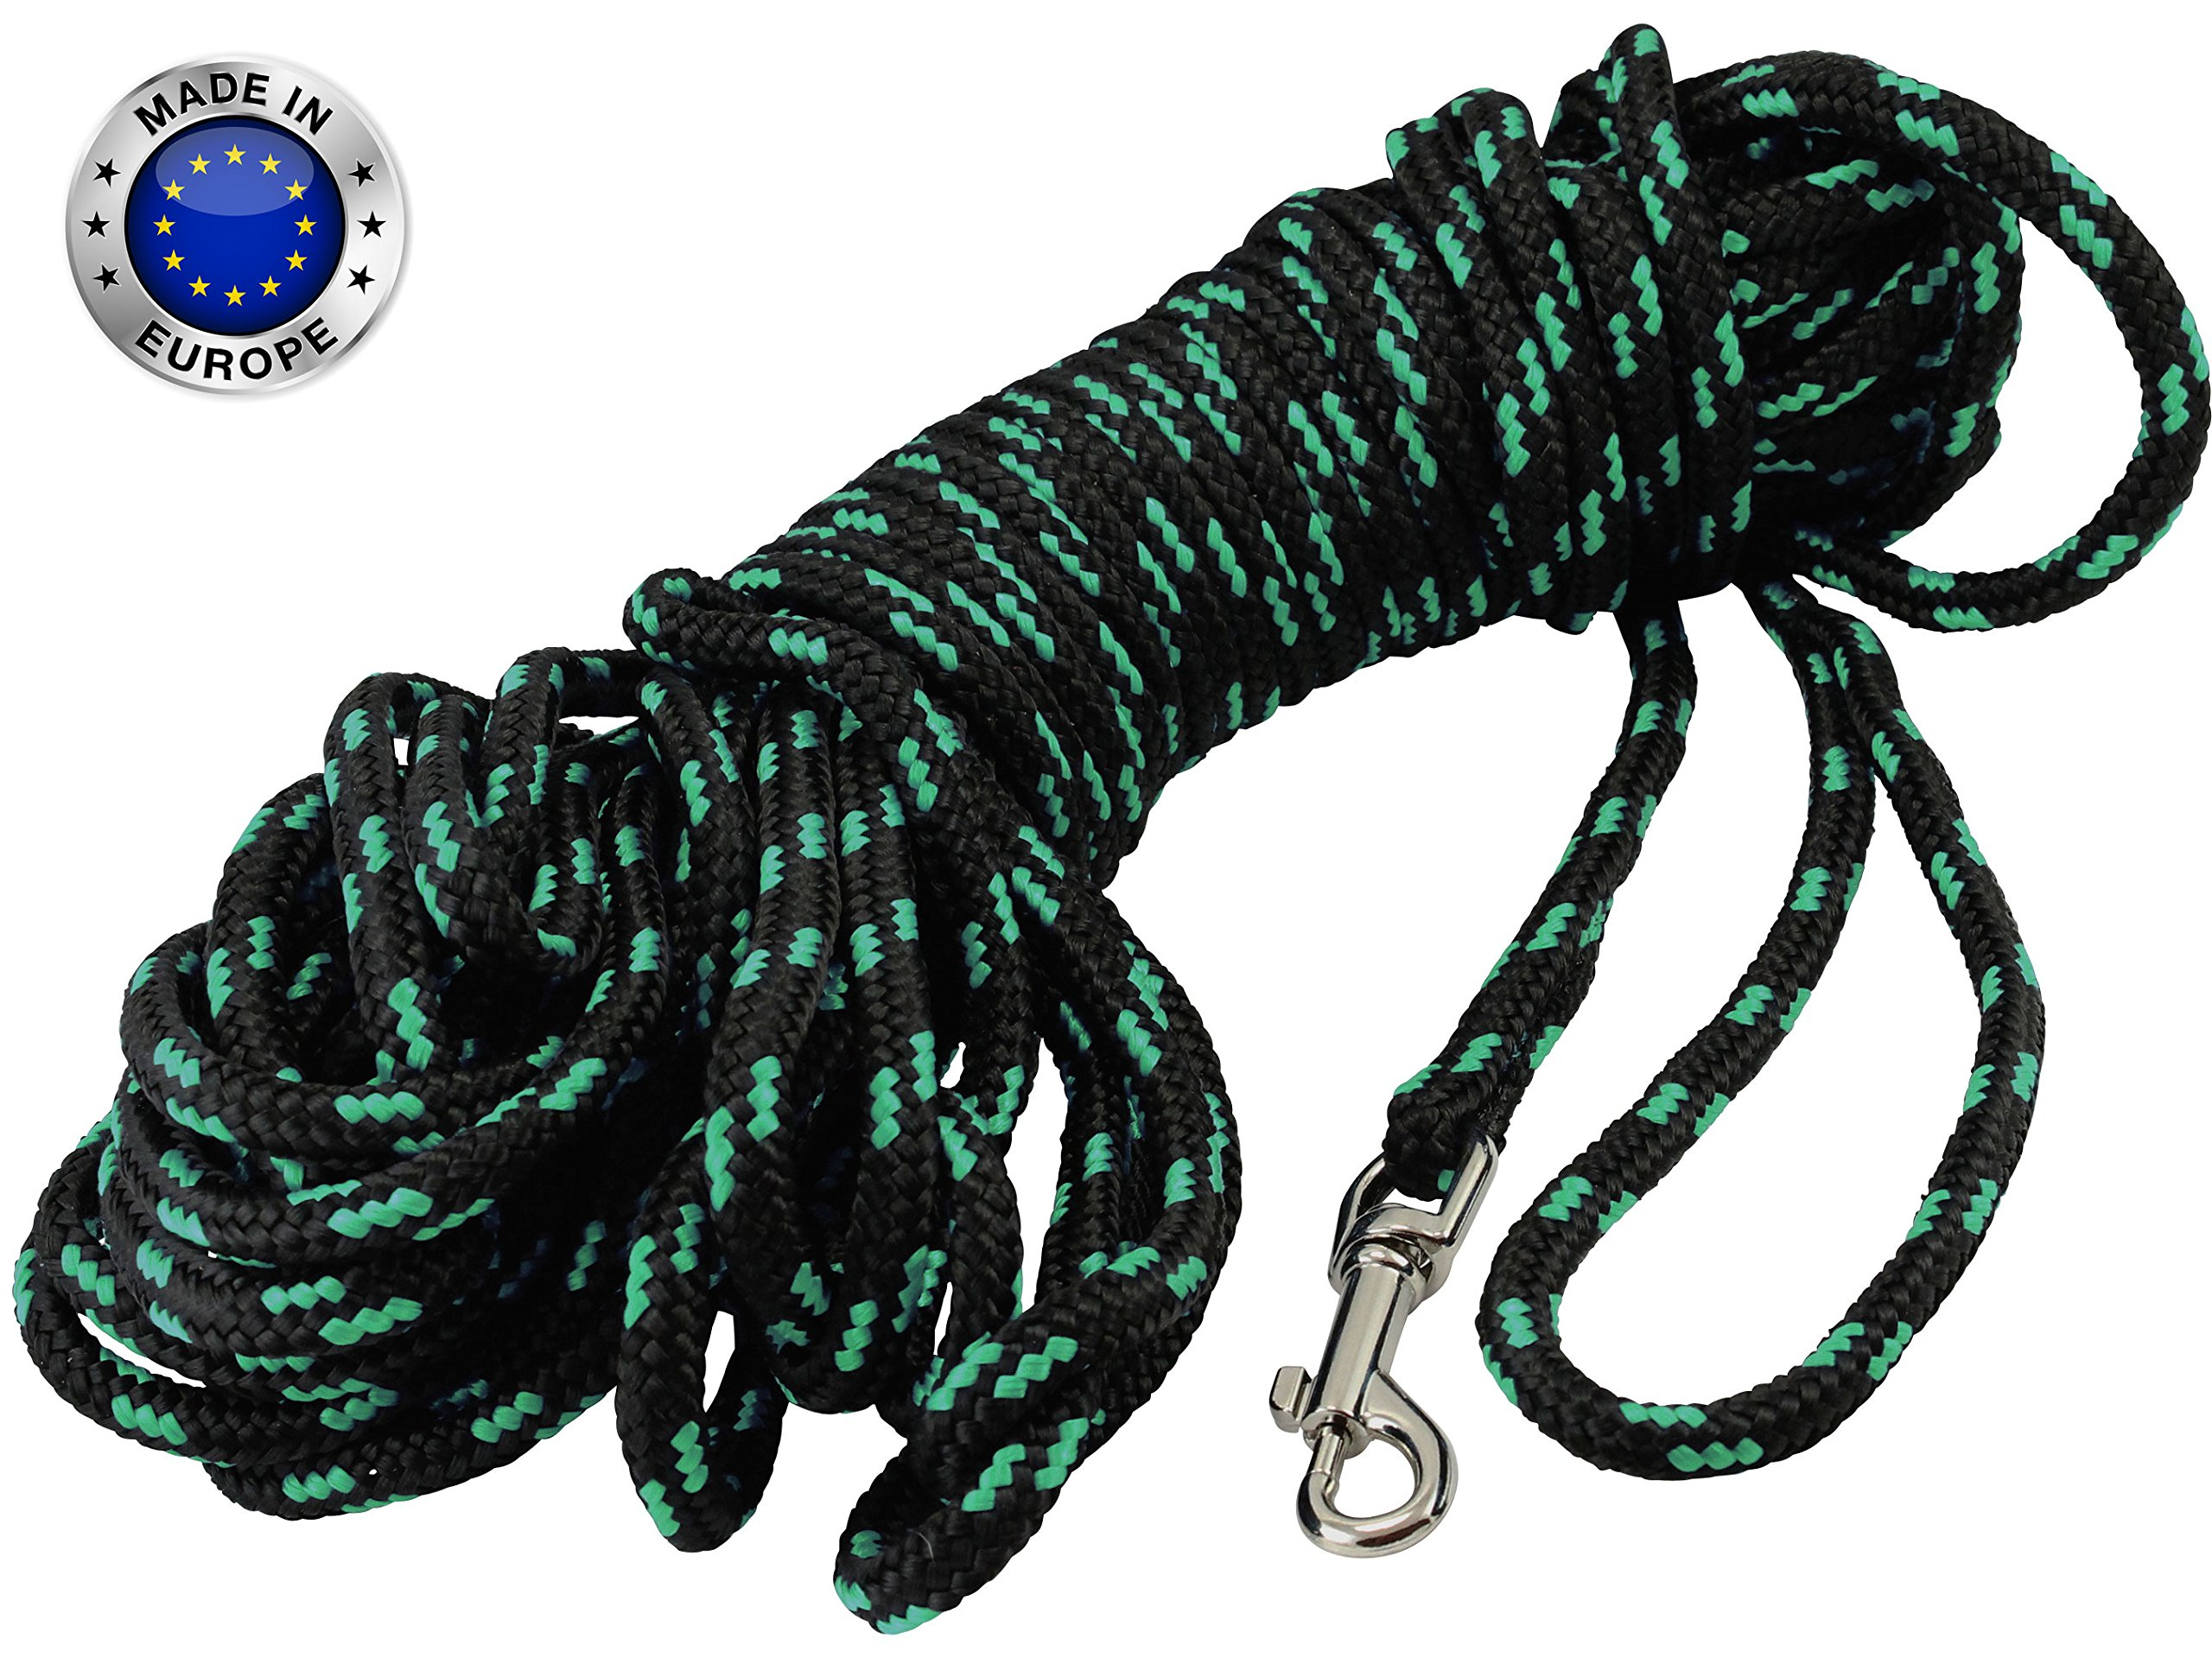 Braided Nylon Rope Tracking Dog Leash, Black with Green 15-Feet/30-Feet/45-Feet/60-Feet Training Lead for Small and Medium Dogs (45ft, Medium - Diam 3/8'' (8mm))